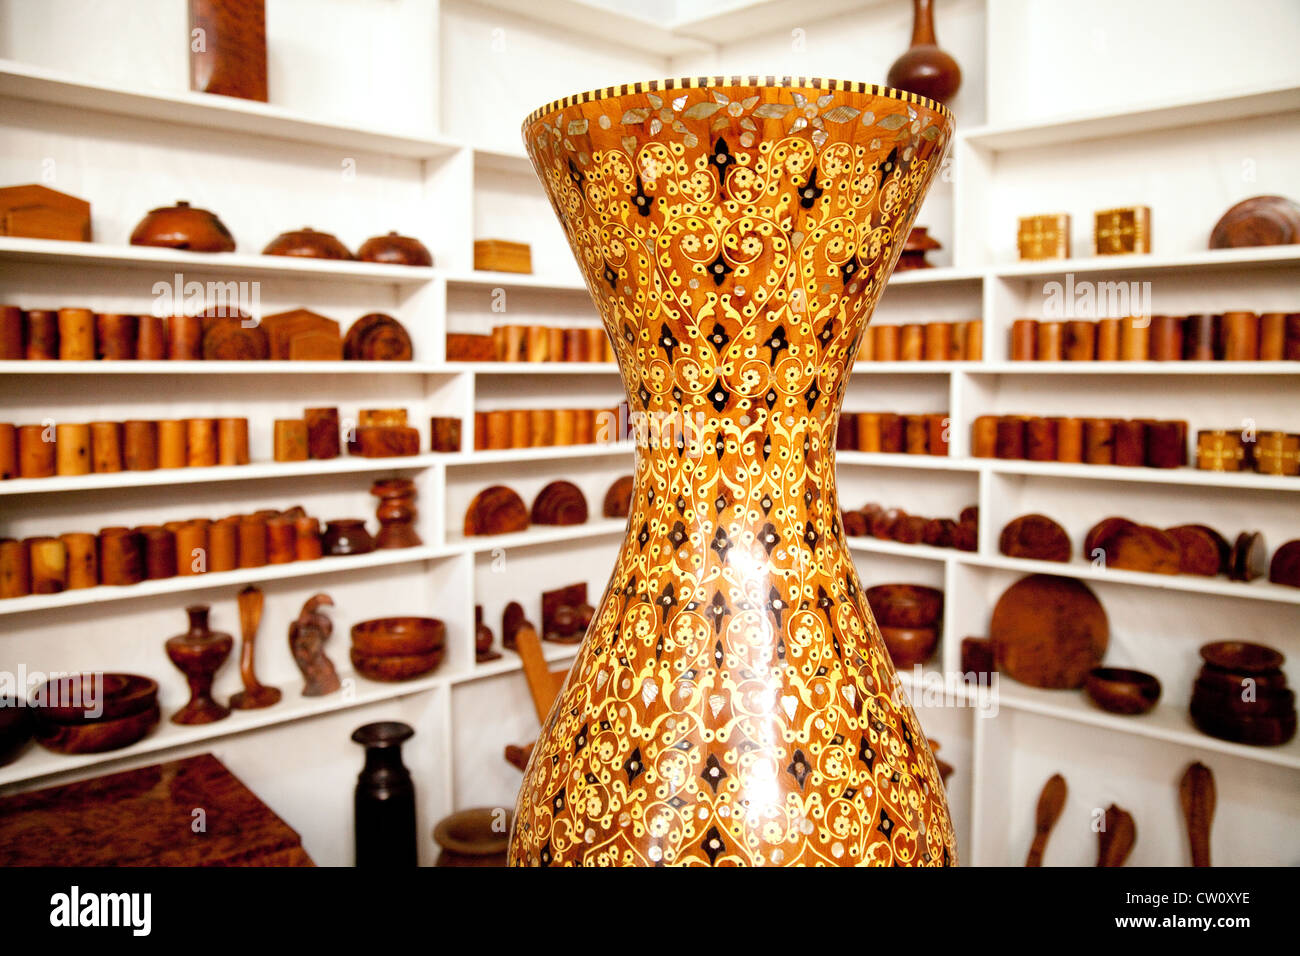 Moroccan vase stock photos moroccan vase stock images alamy moroccan marquetry vase for sale in a craft shop essaouira morocco africa stock image reviewsmspy